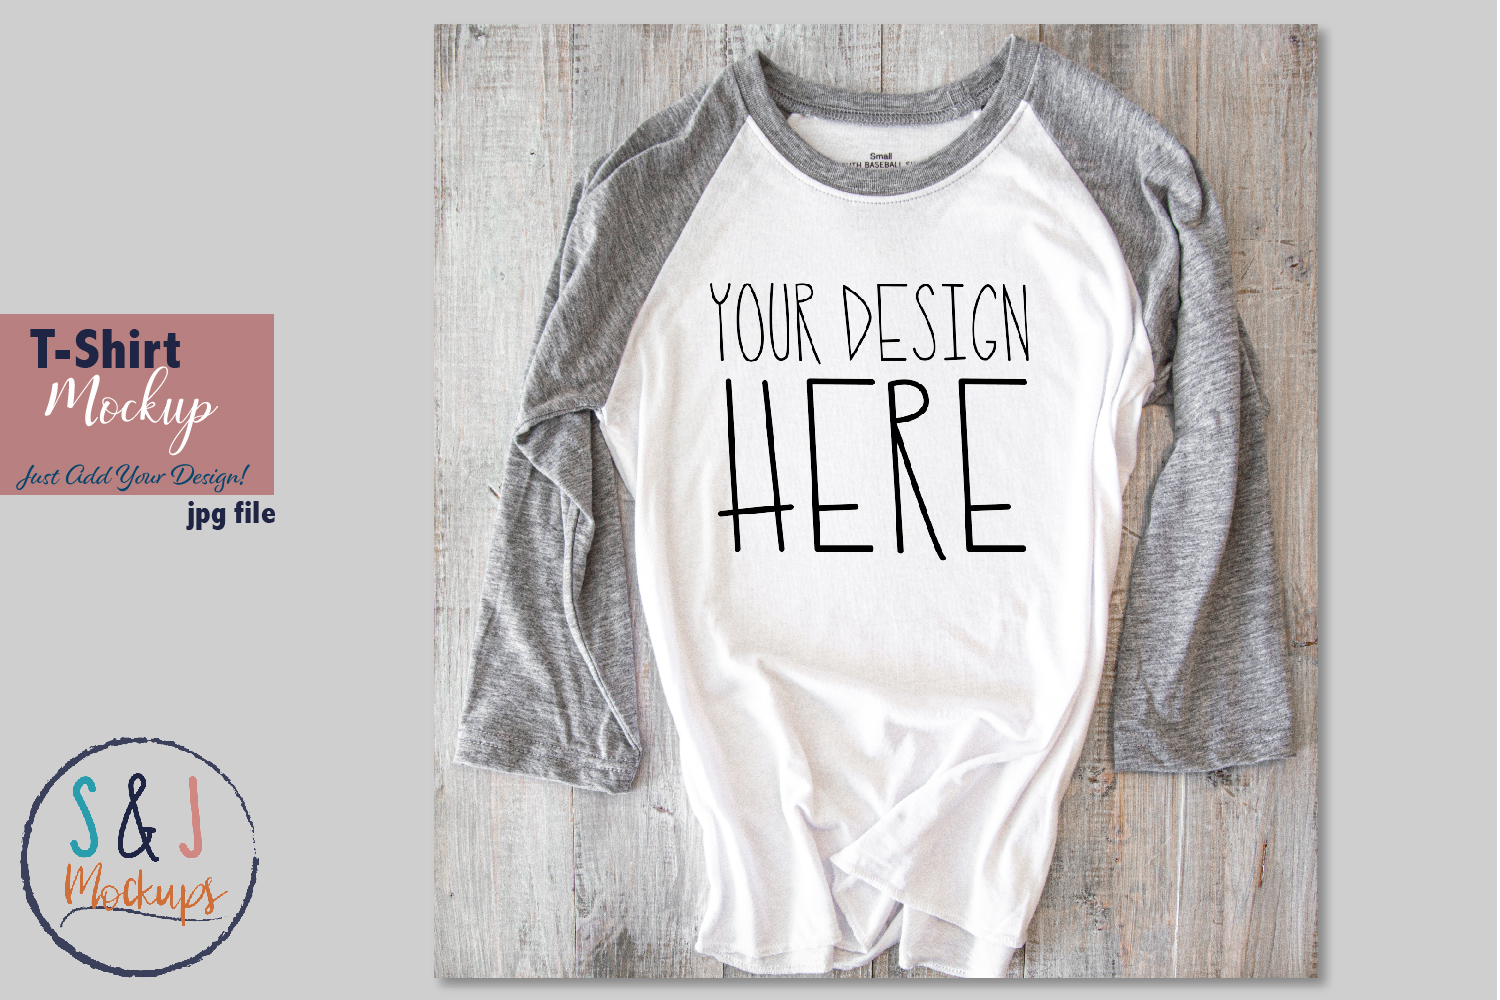 Download Free Raglan Shirt Mockup Tshirt Mockup Graphic By Sandjmockups for Cricut Explore, Silhouette and other cutting machines.